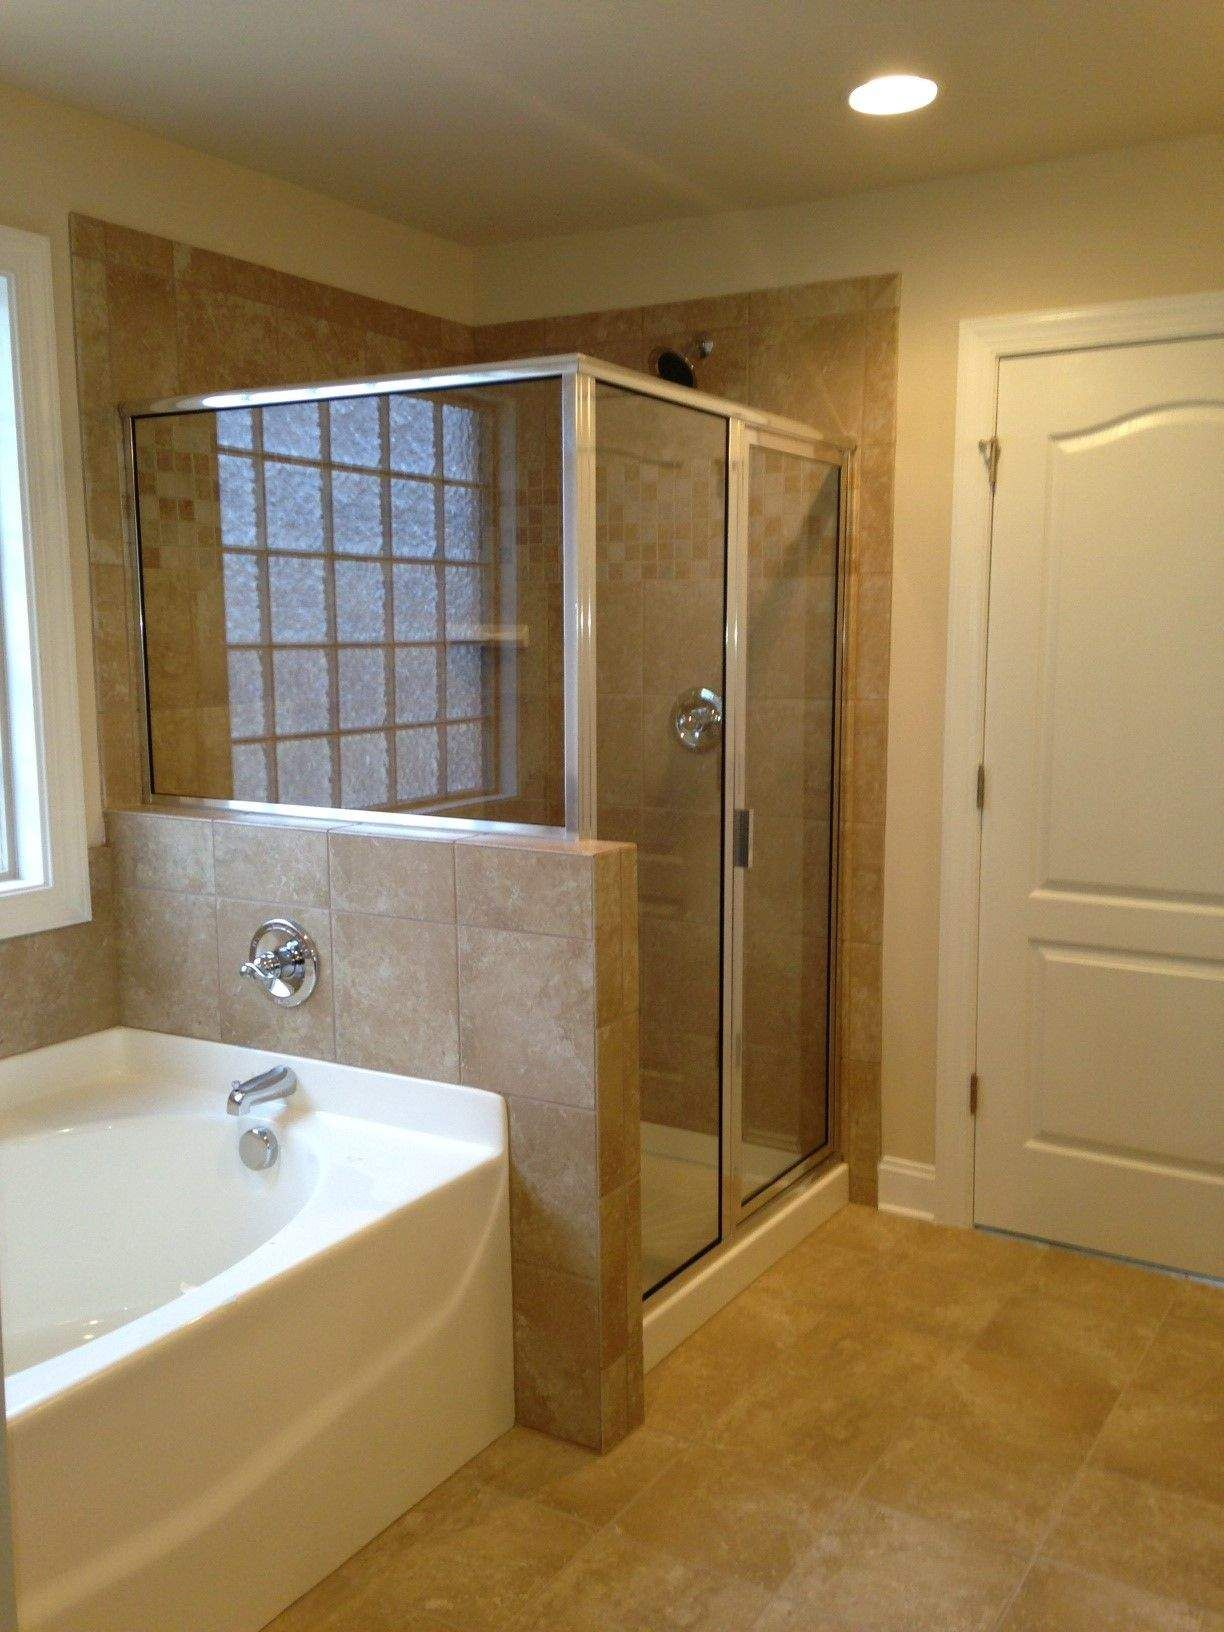 tile board for bathrooms popular the wakefield master bath group 4 rh pinterest com Painting Old Bathroom Tile DIY Painting Bathroom Tile